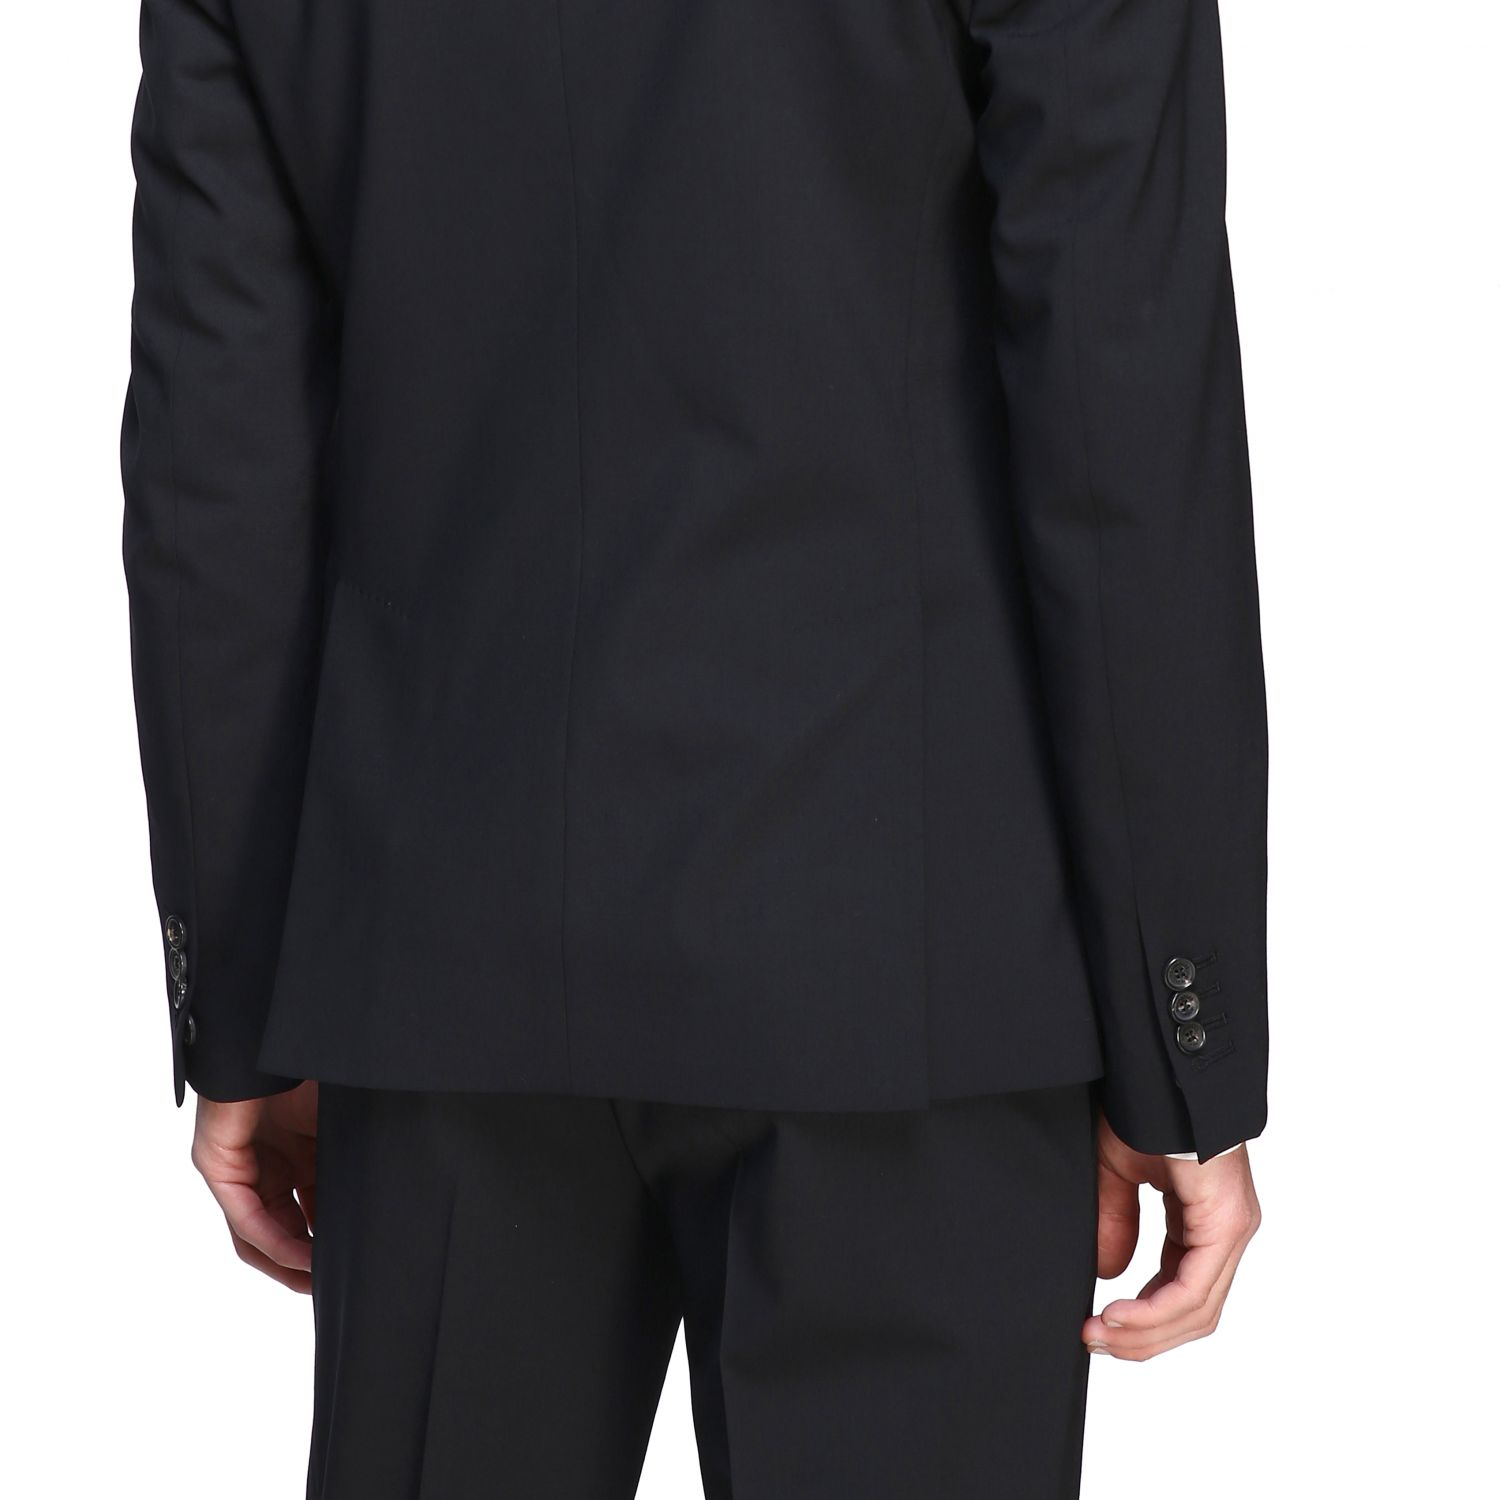 Suit Dsquared2: Dsquared2 suit in basic single-breasted virgin wool blend black 5